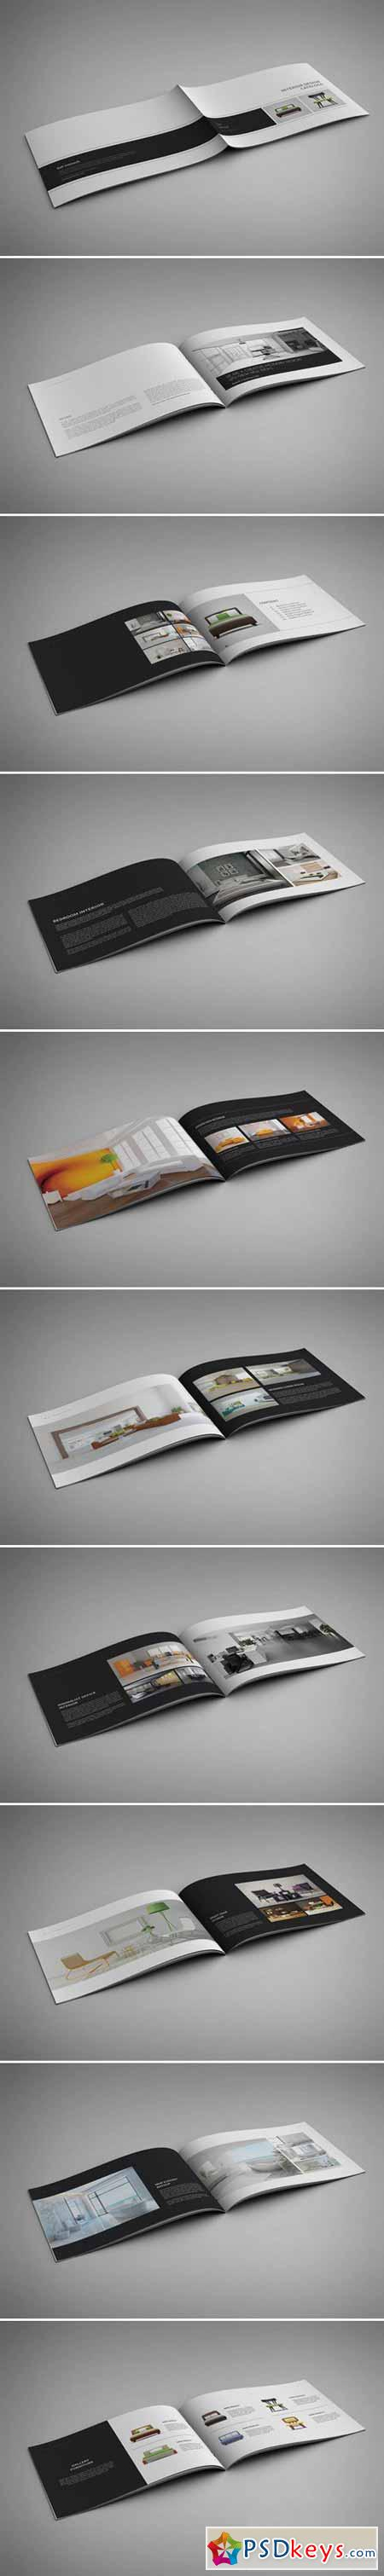 Catalogs Brochure 404835